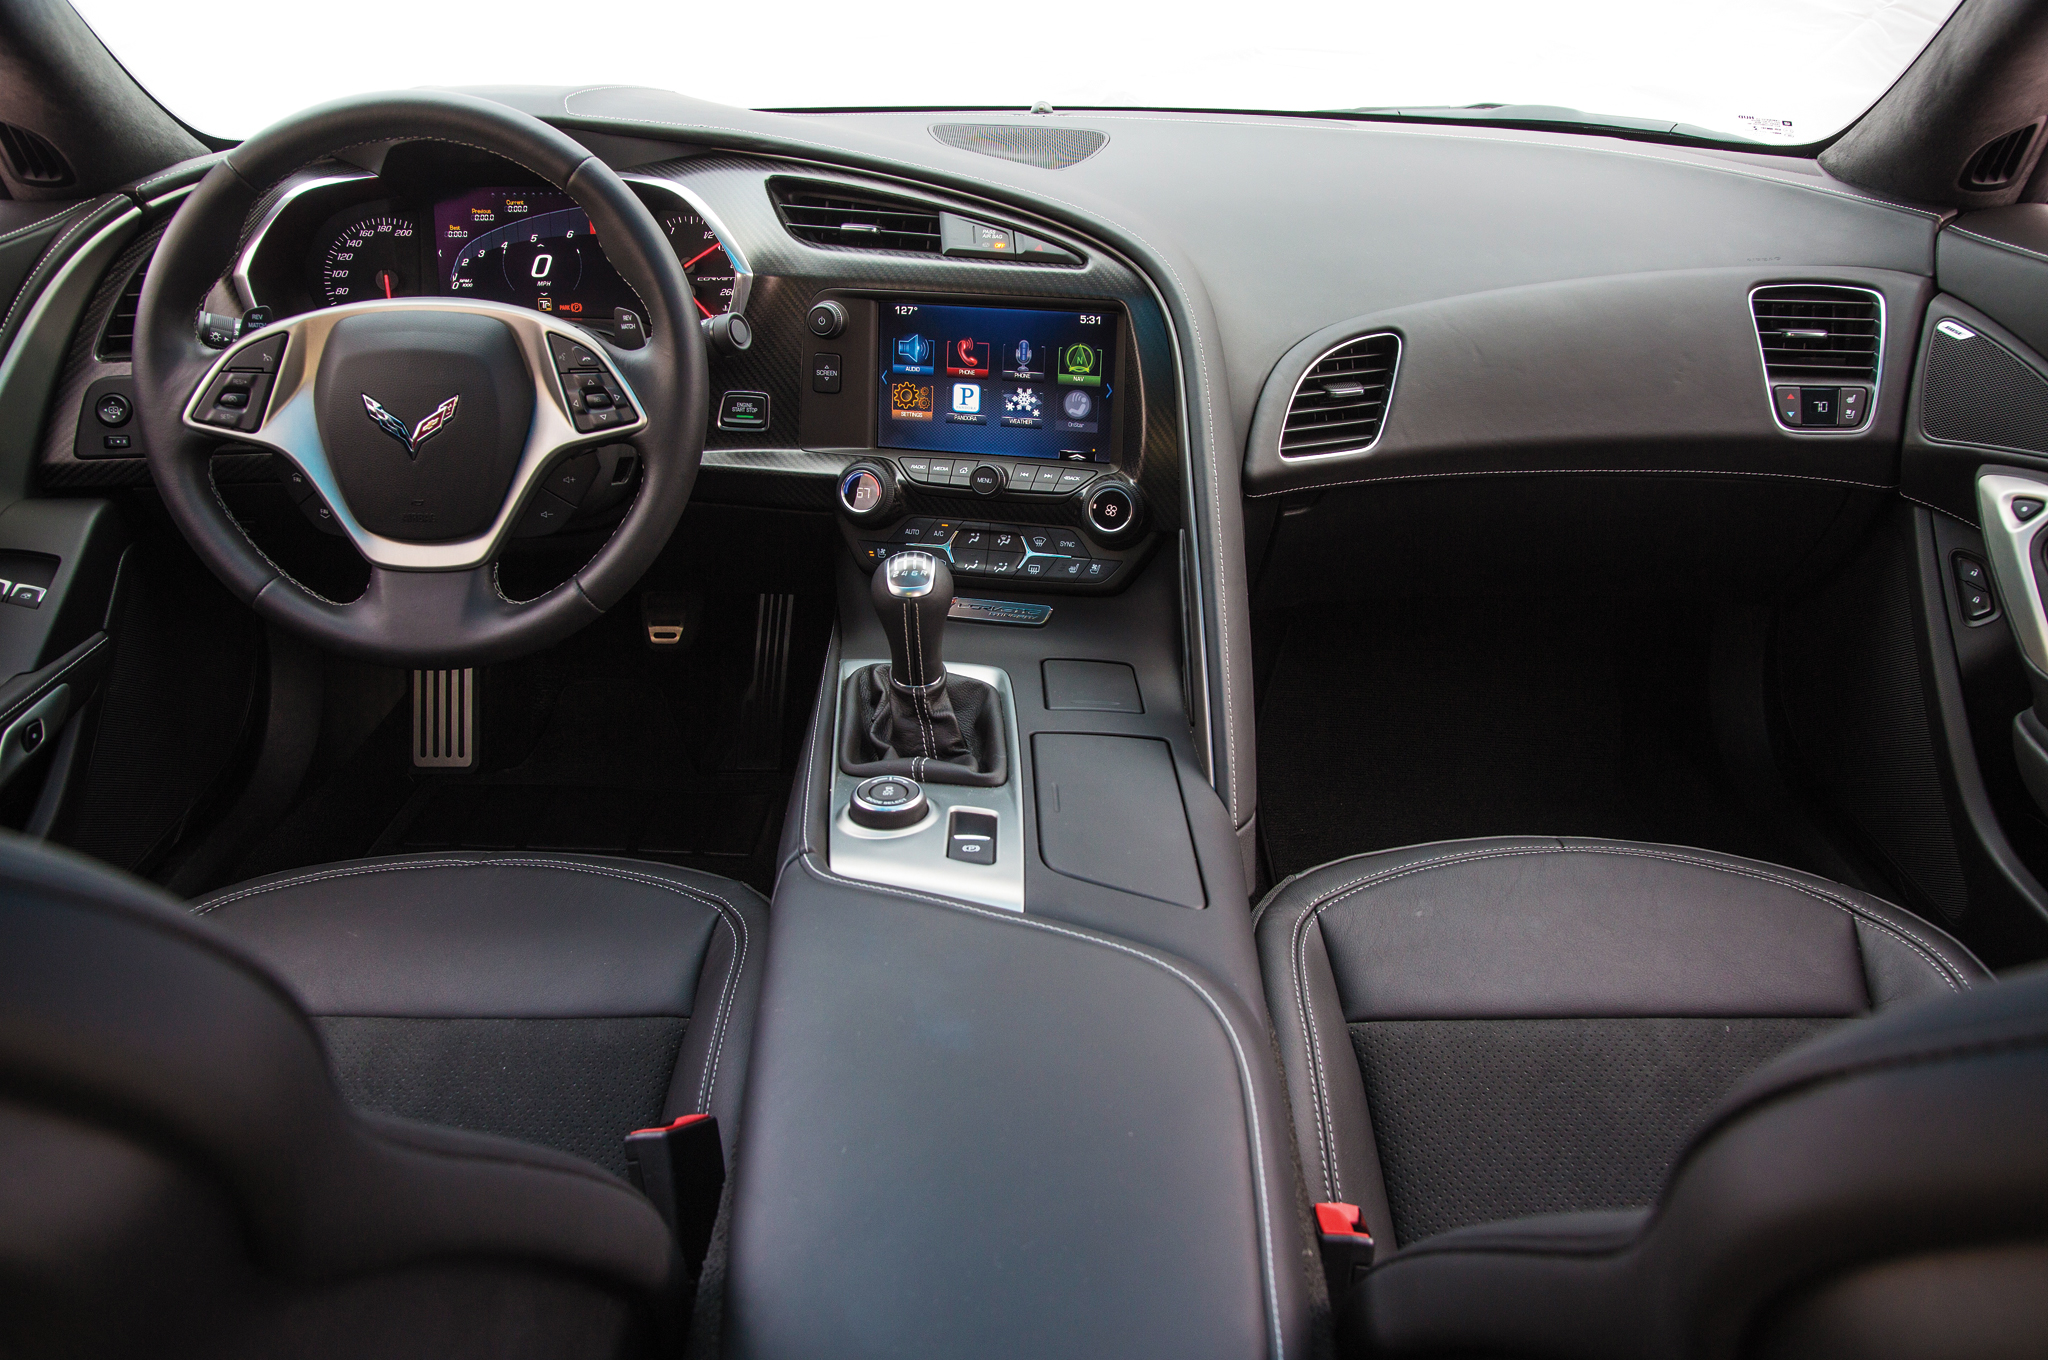 2014 Chevrolet Corvette Stingray Z51 Dashboard and Cockpit